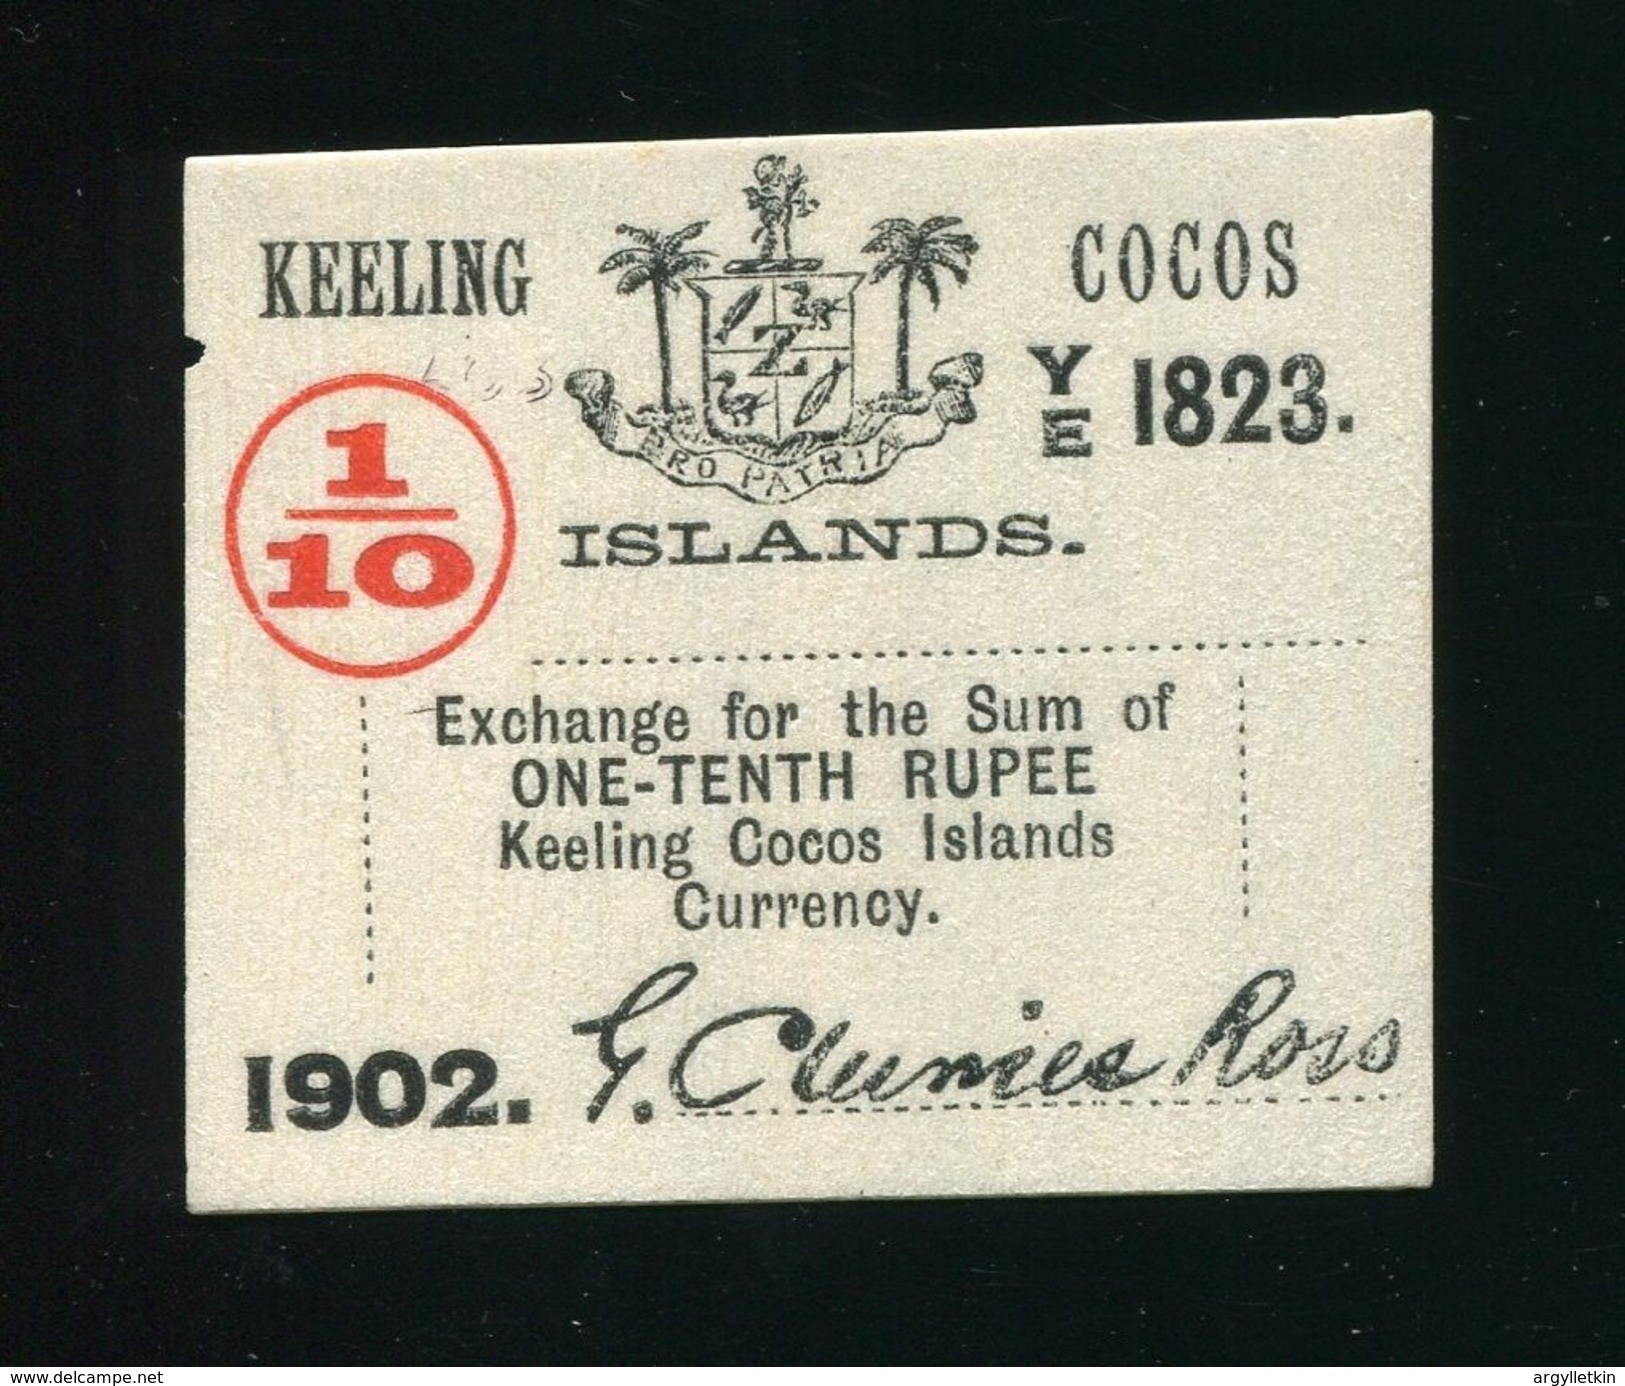 COCOS KEELING ISLANDS 1902 RUPEE CURRENCY NOTE CLUNIES ROSS - Coins & Banknotes